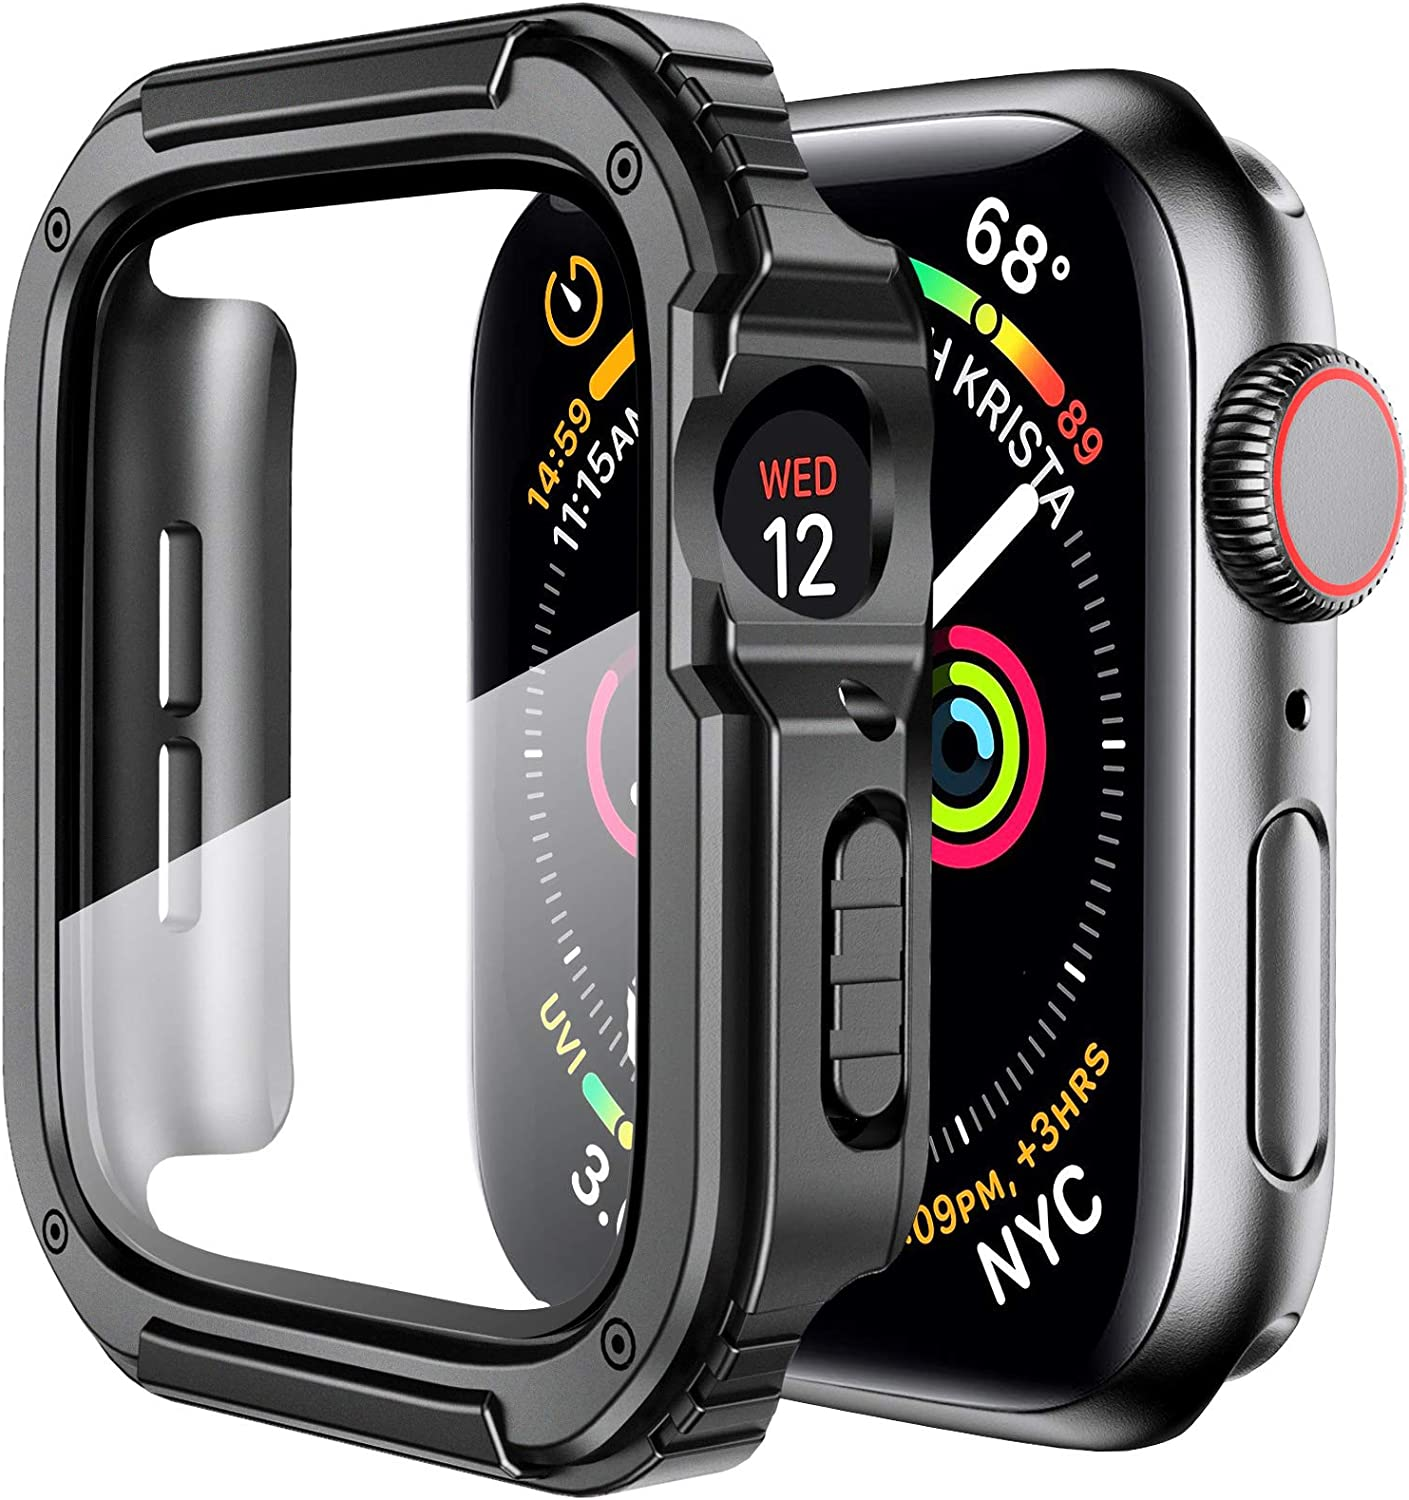 Mesime Rugged Case Compatible for Apple Watch Cover with Apple Watch Tempered Glass Screen Protector for 44mm iWatch Series 6 5 4 SE Protective Accessories Hard Case